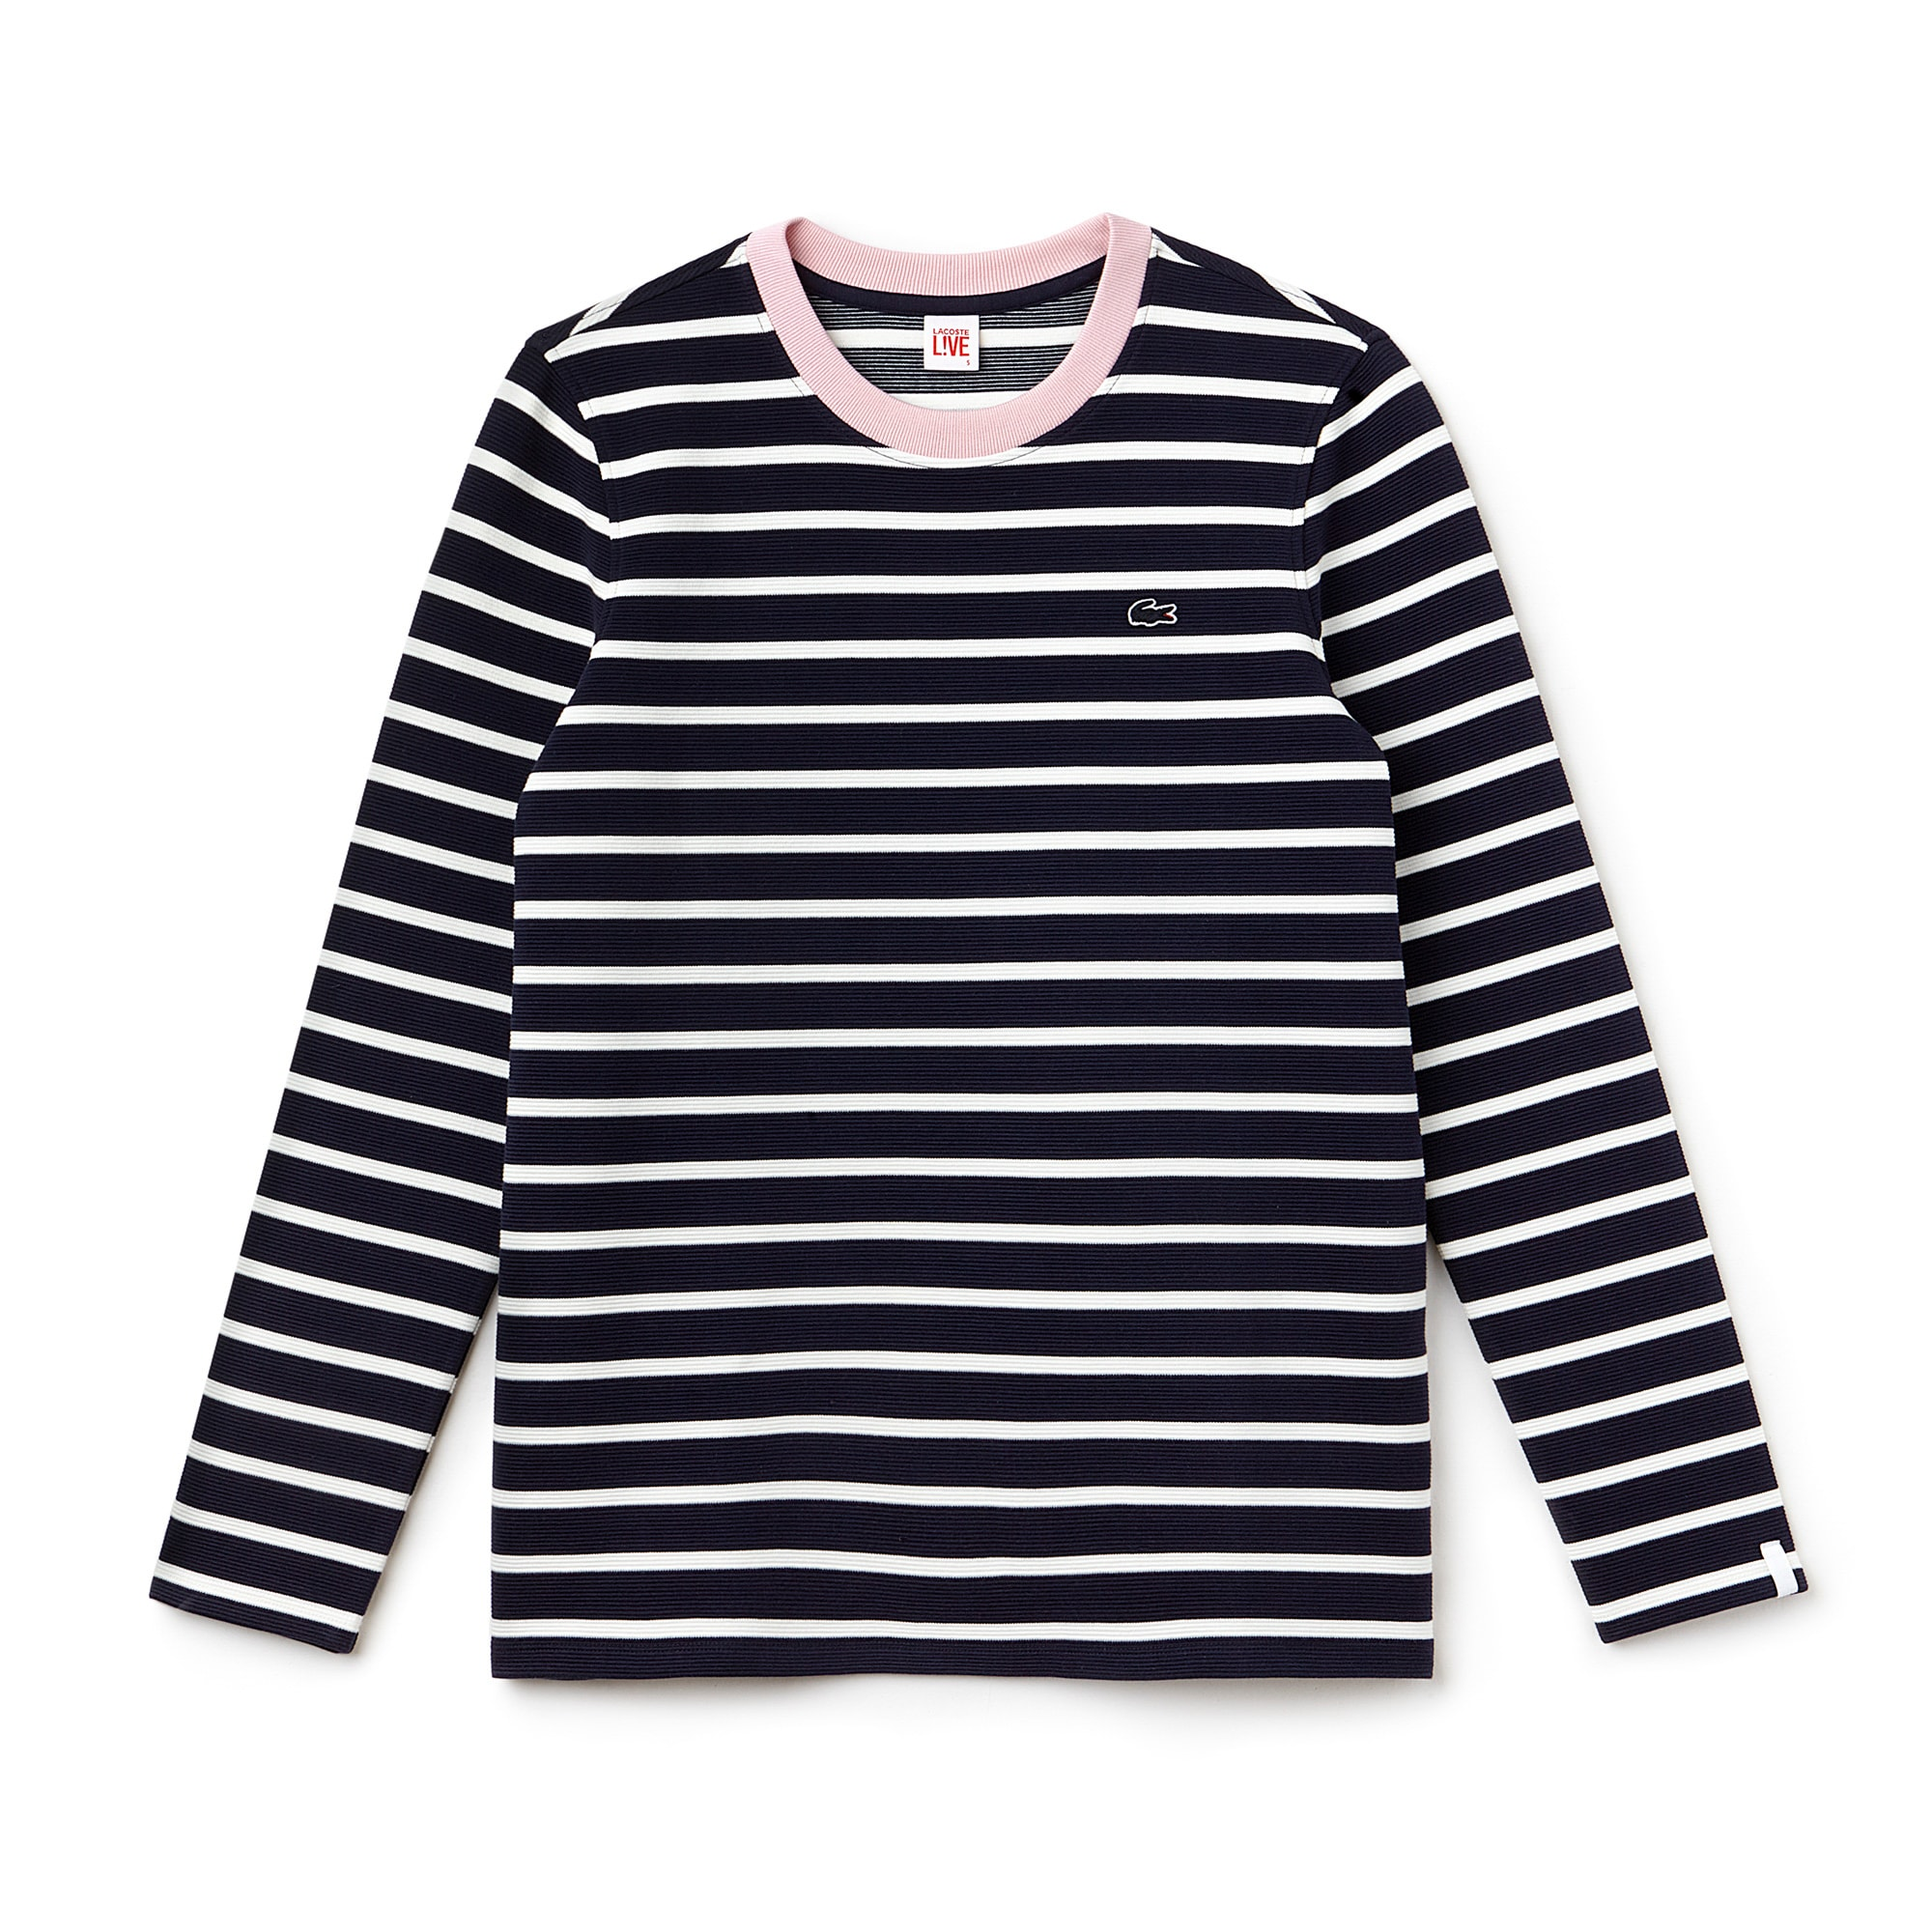 Women's  LIVE Contrast Collar Ottoman Knit Nautical Shirt